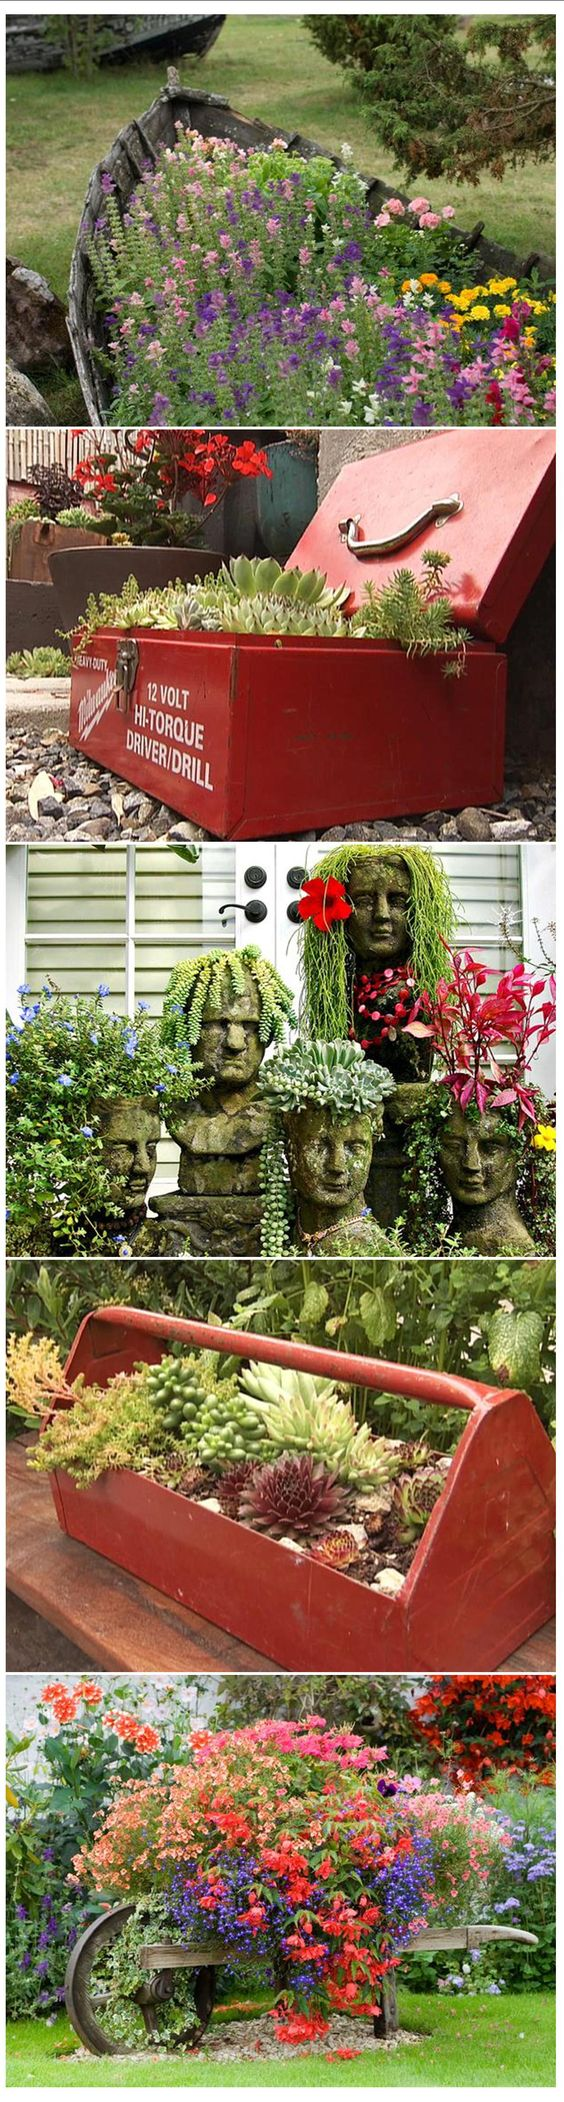 13 Unusual And Upcycled Container Gardens Gardens The Head And Tool Box